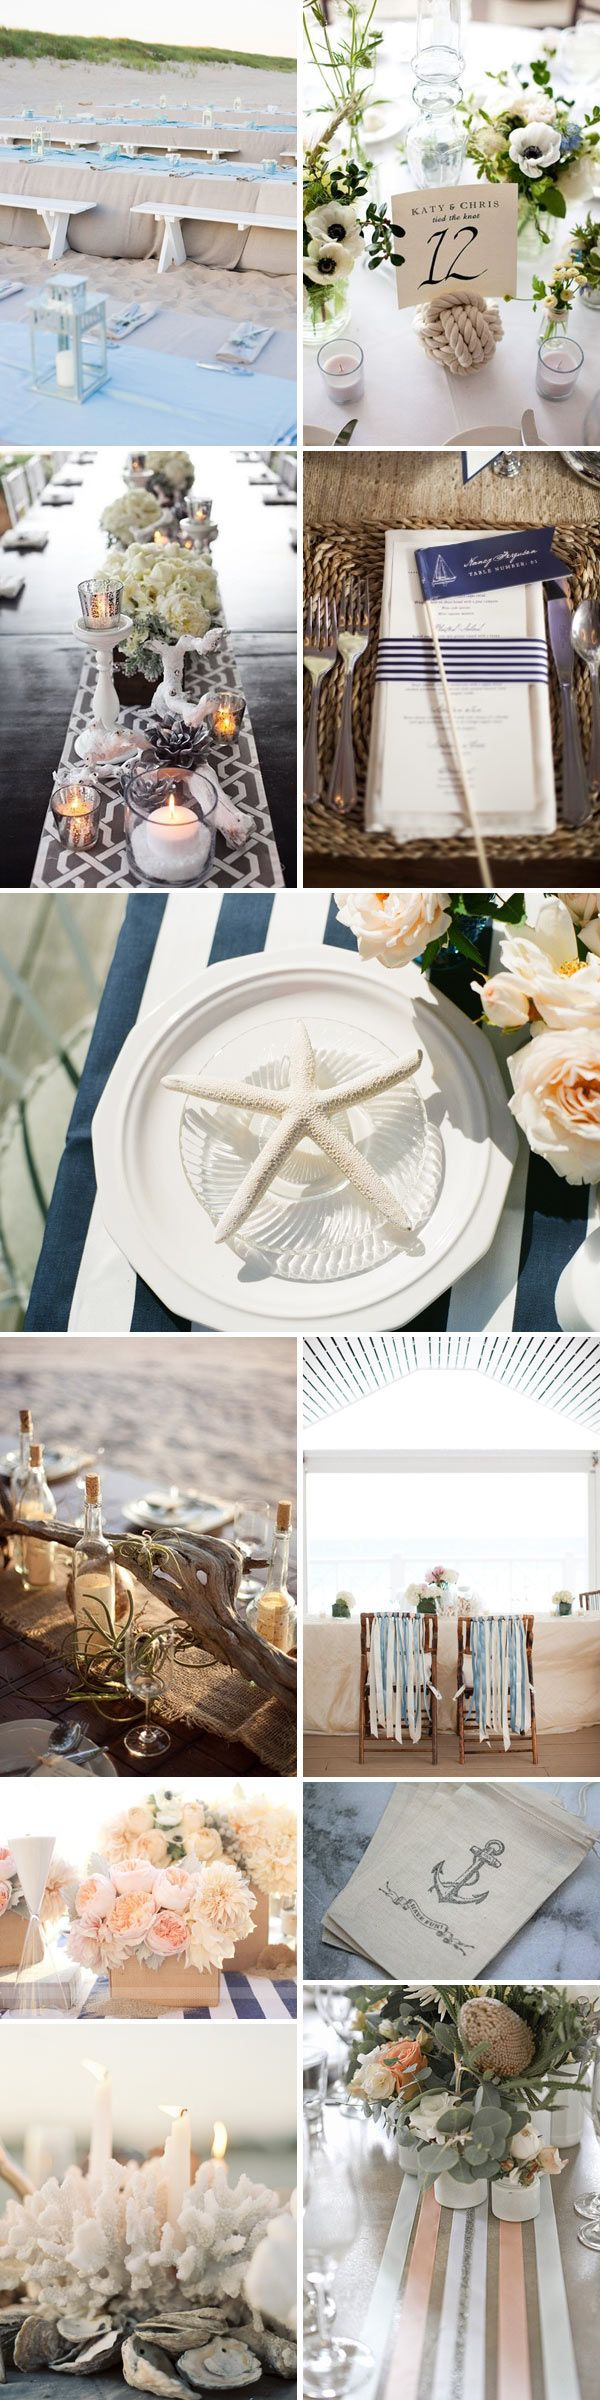 28 best Nautical Wedding Ideas images on Pinterest | Nautical ...